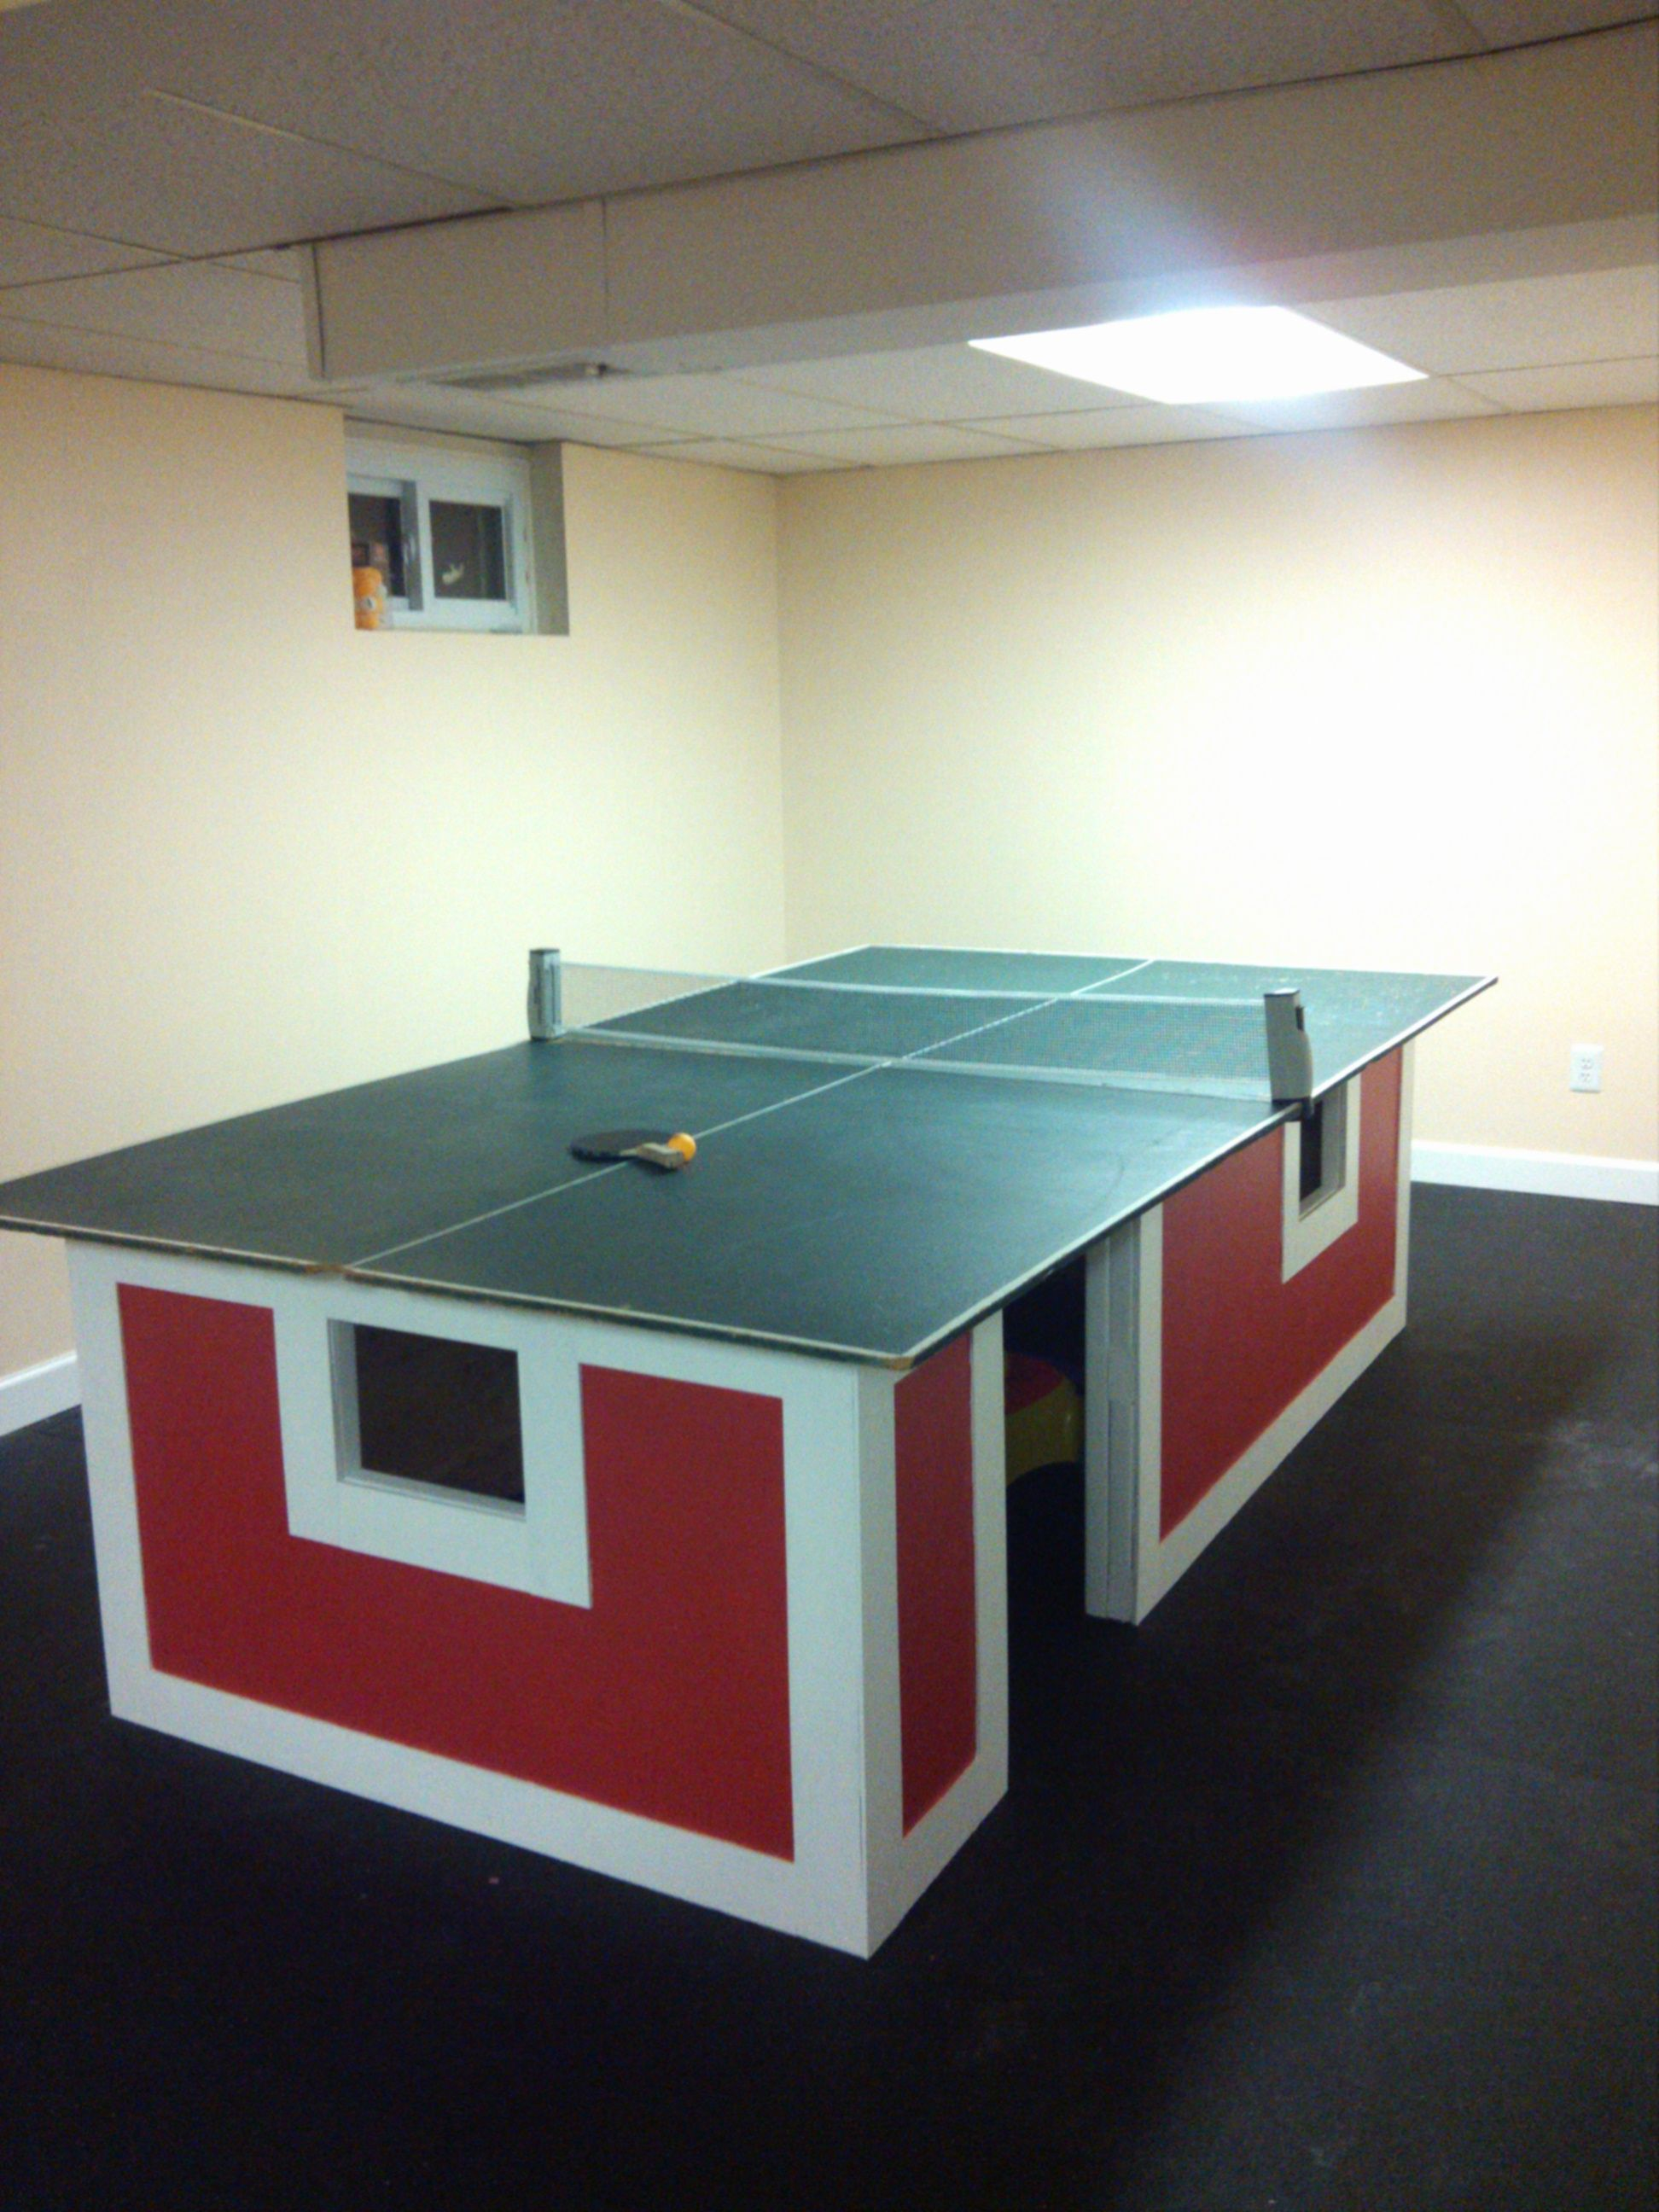 21 Best Ping Pong Tables Images On Pinterest | Ping Pong Table, Tennis And  Game Tables